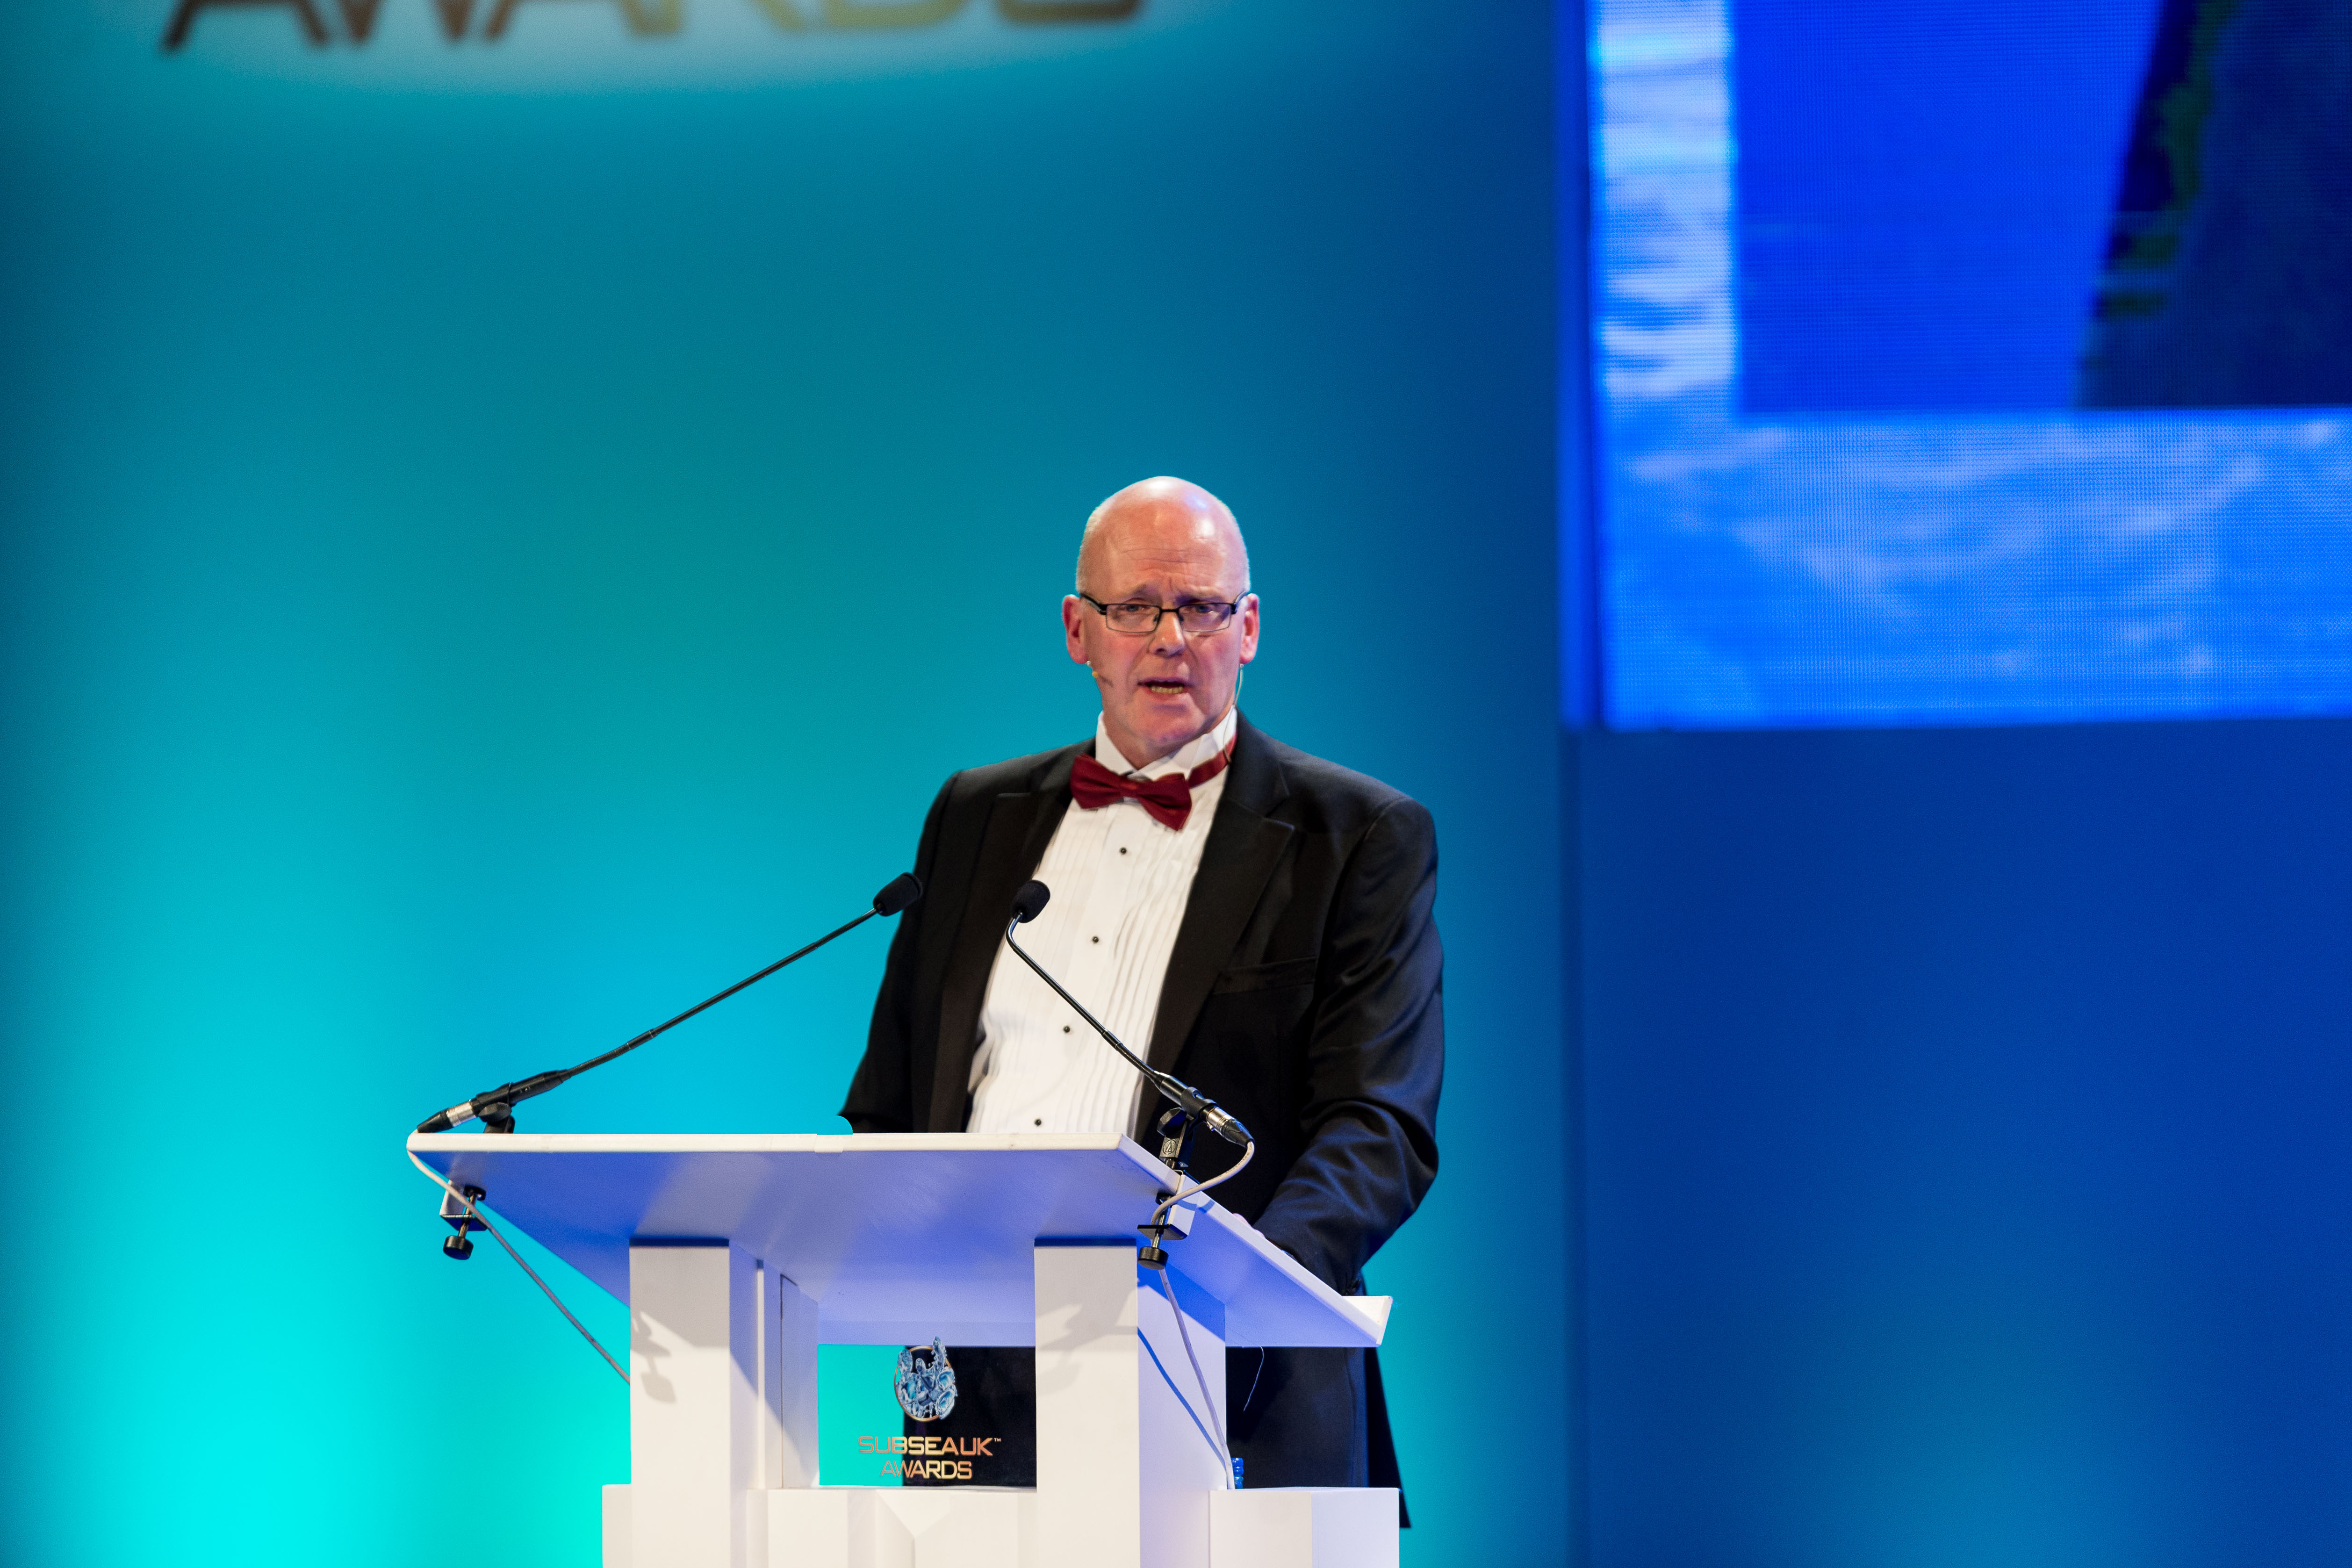 Subsea UK CEO Neil Gordon at the 2017 awards ceremony